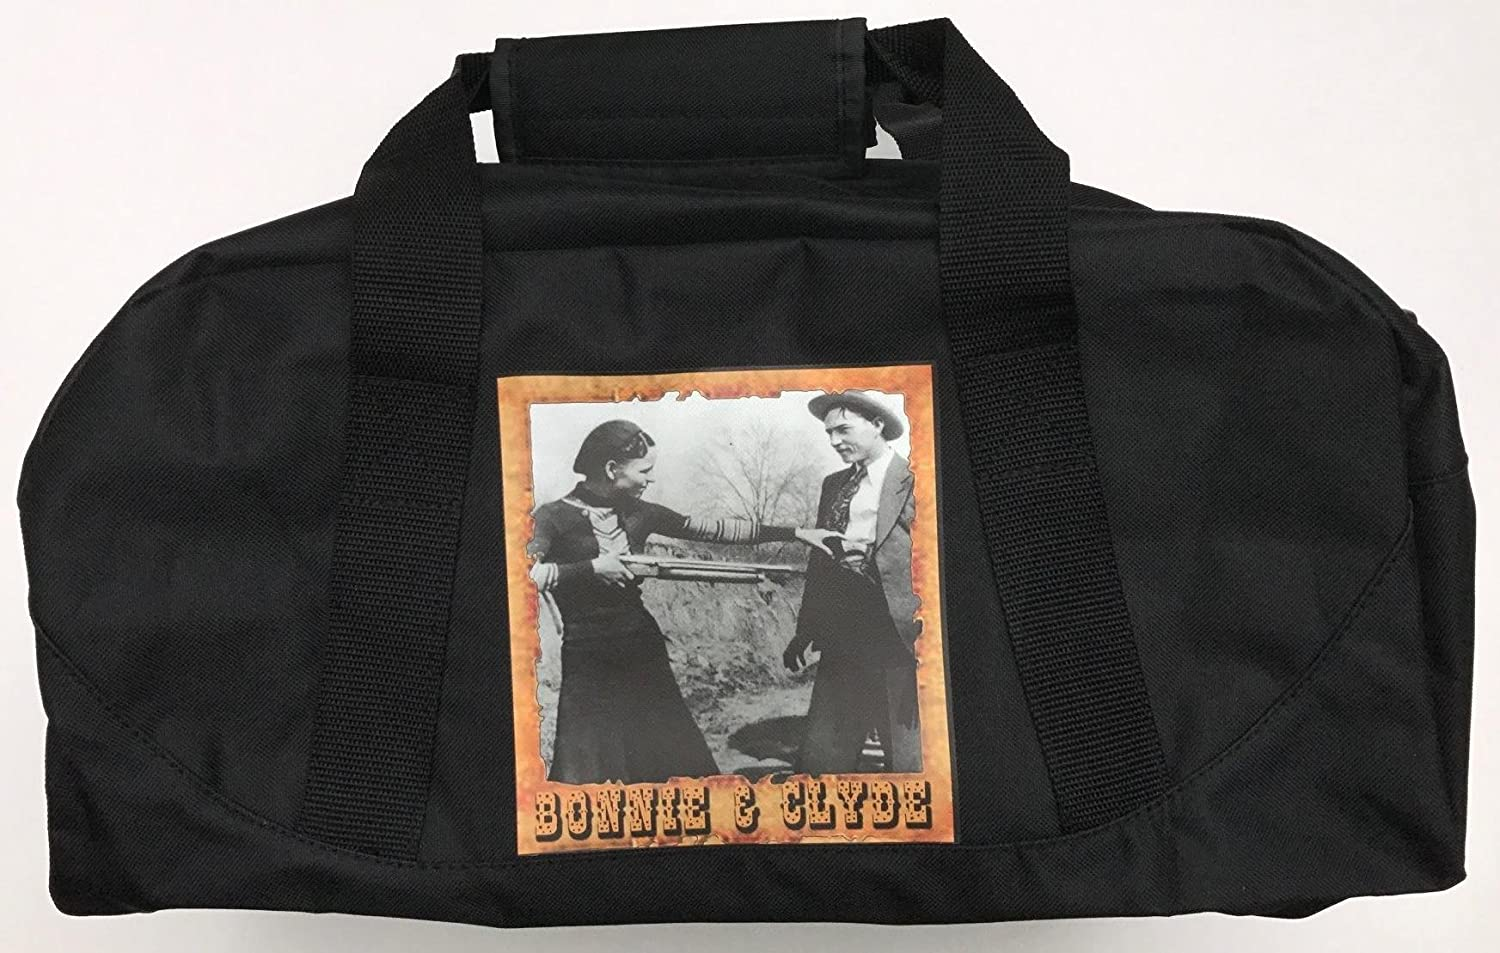 Amazon.com   Bonnie and Clyde Getaway Bags - outlaw weekender duffel bag    Sports   Outdoors 67ffb935752a9